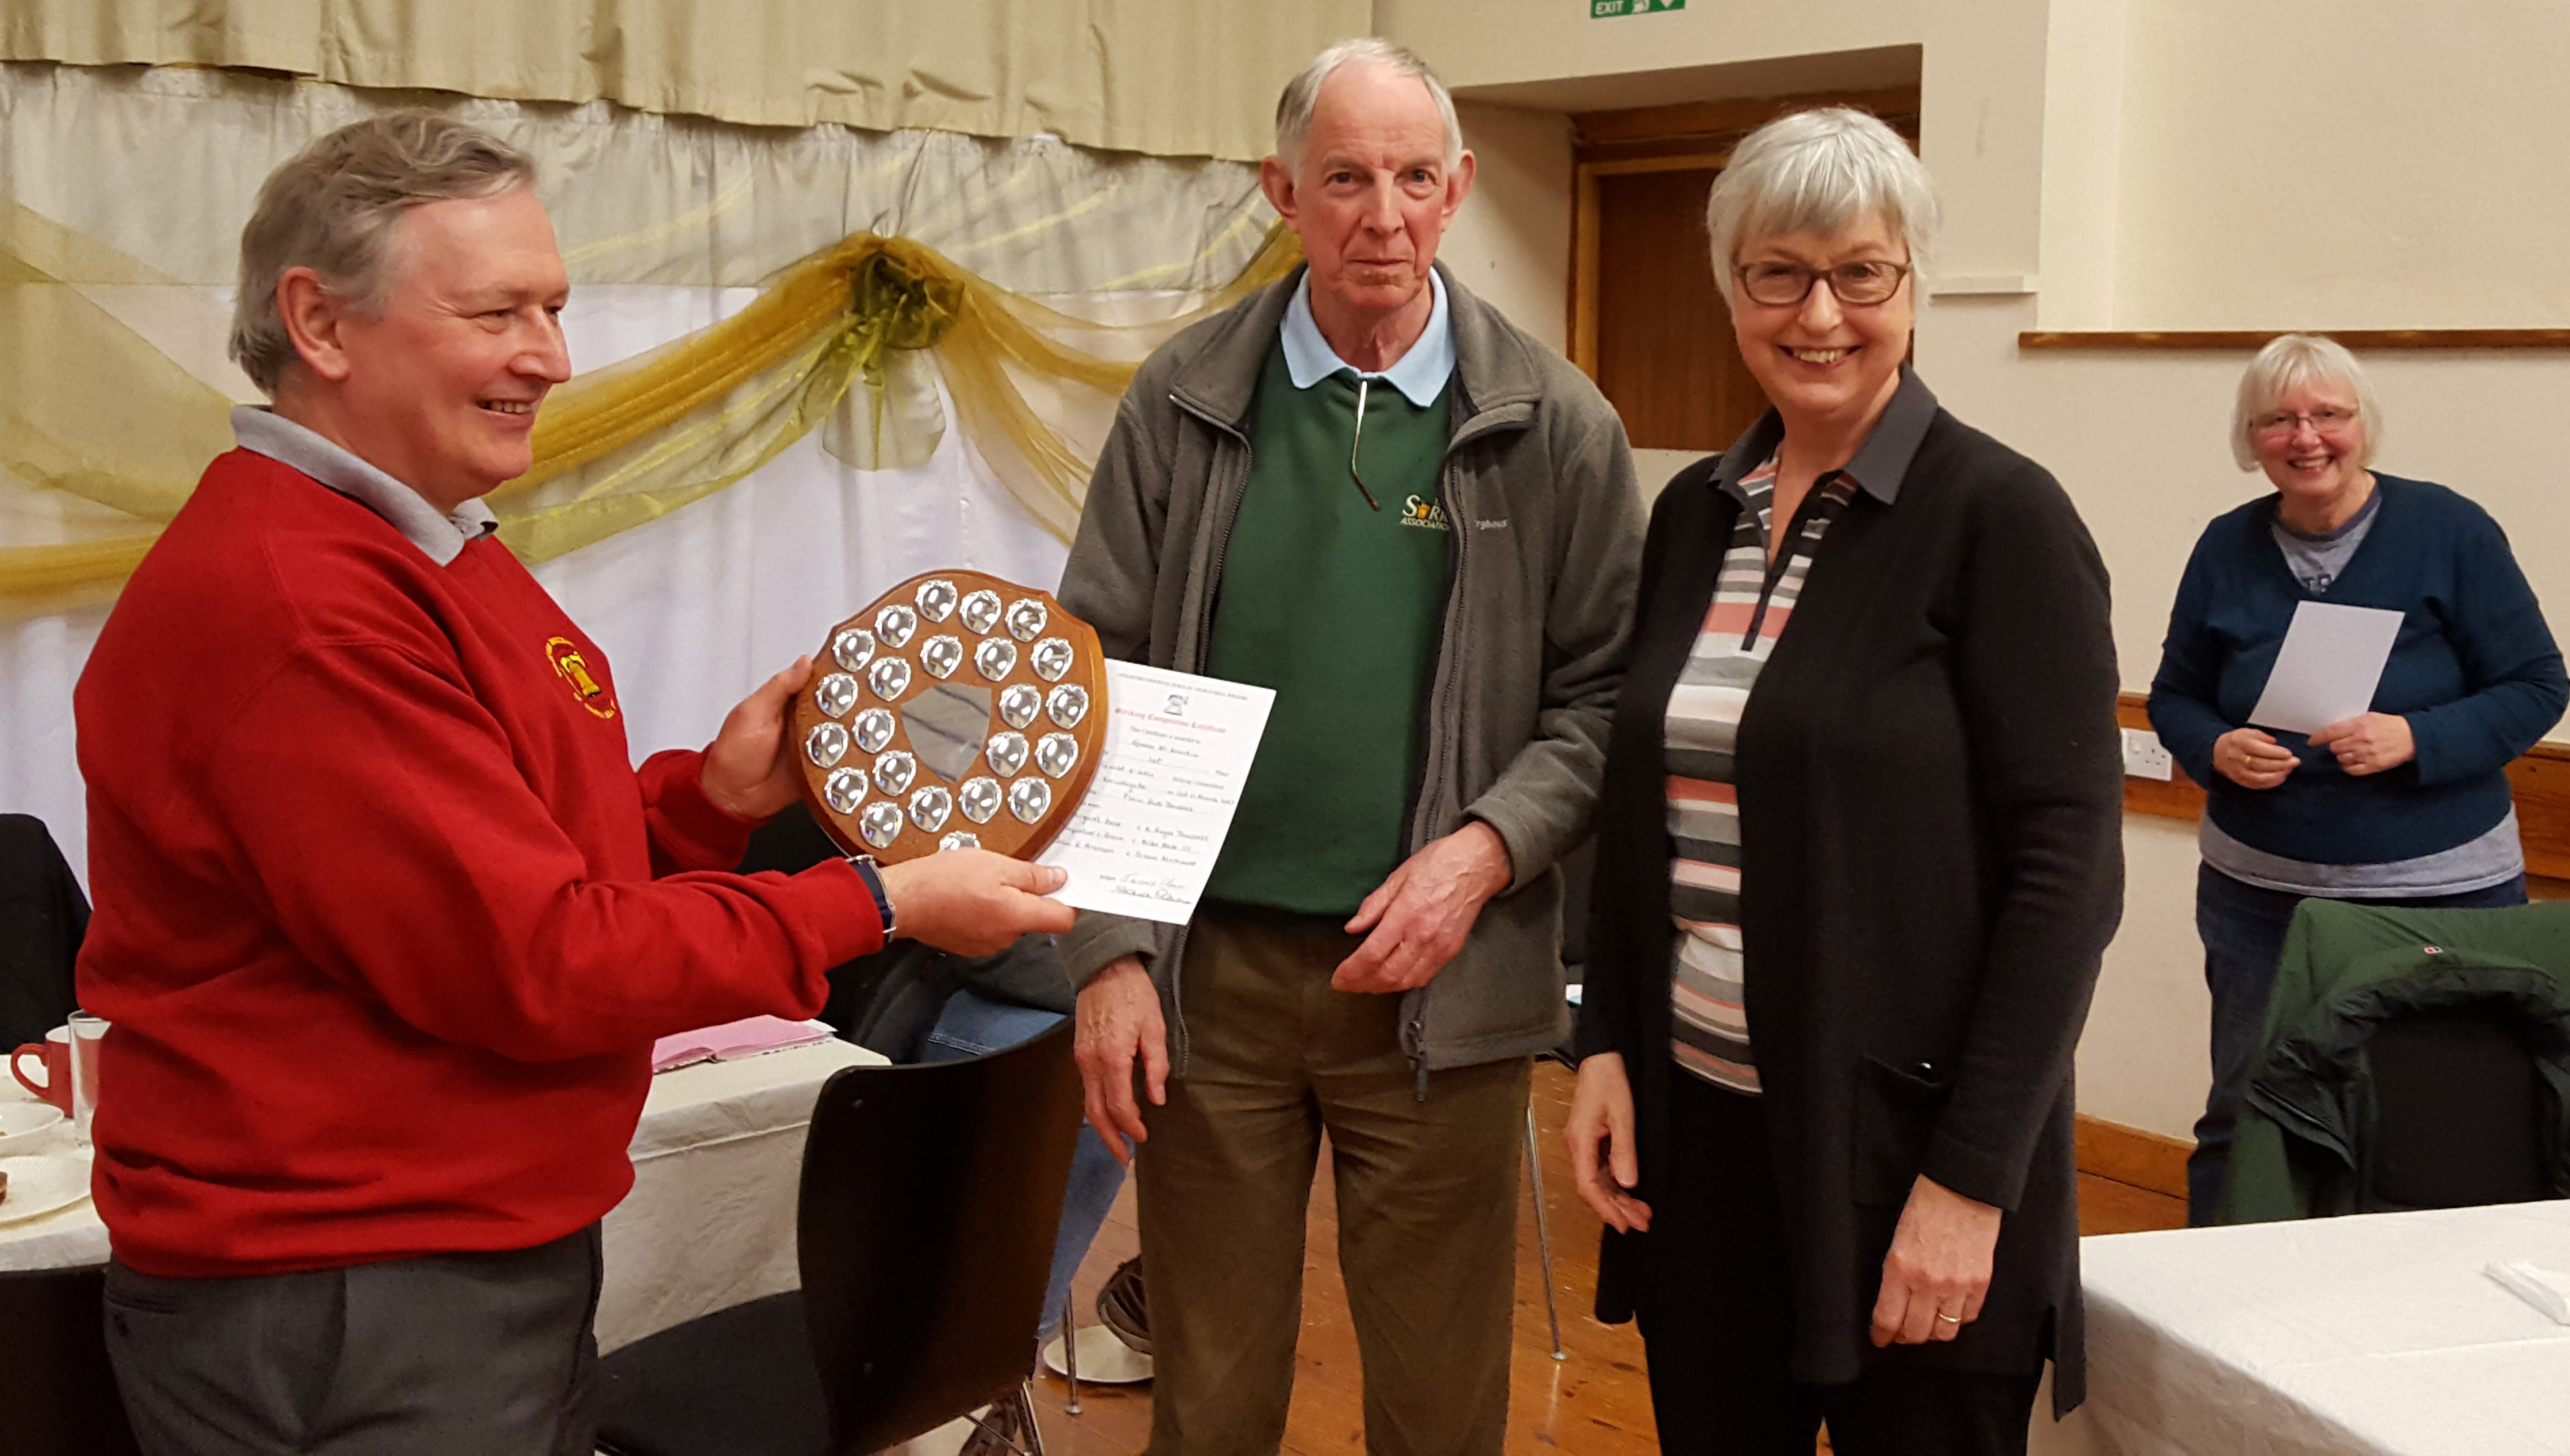 Mike Bale (Epsom) Receiving 6-bell shield from Jeremy and Sheila Cheesman, with Jackie Roberts looking on.